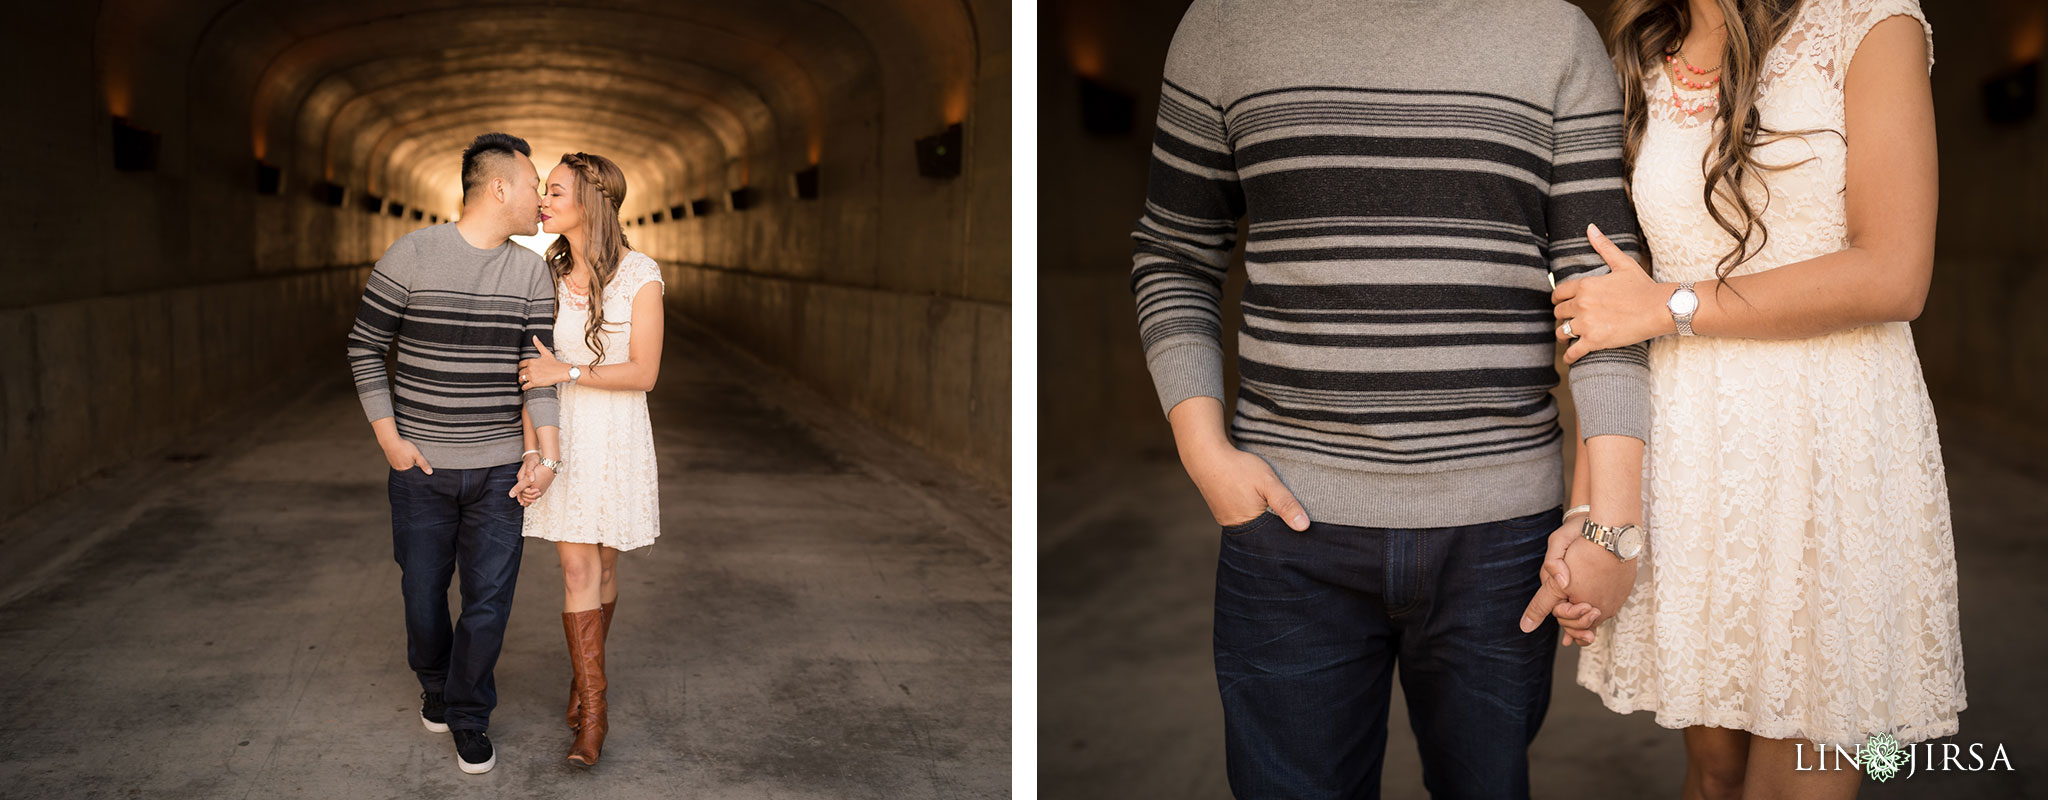 10 jeffrey open space trail orange county engagement photography